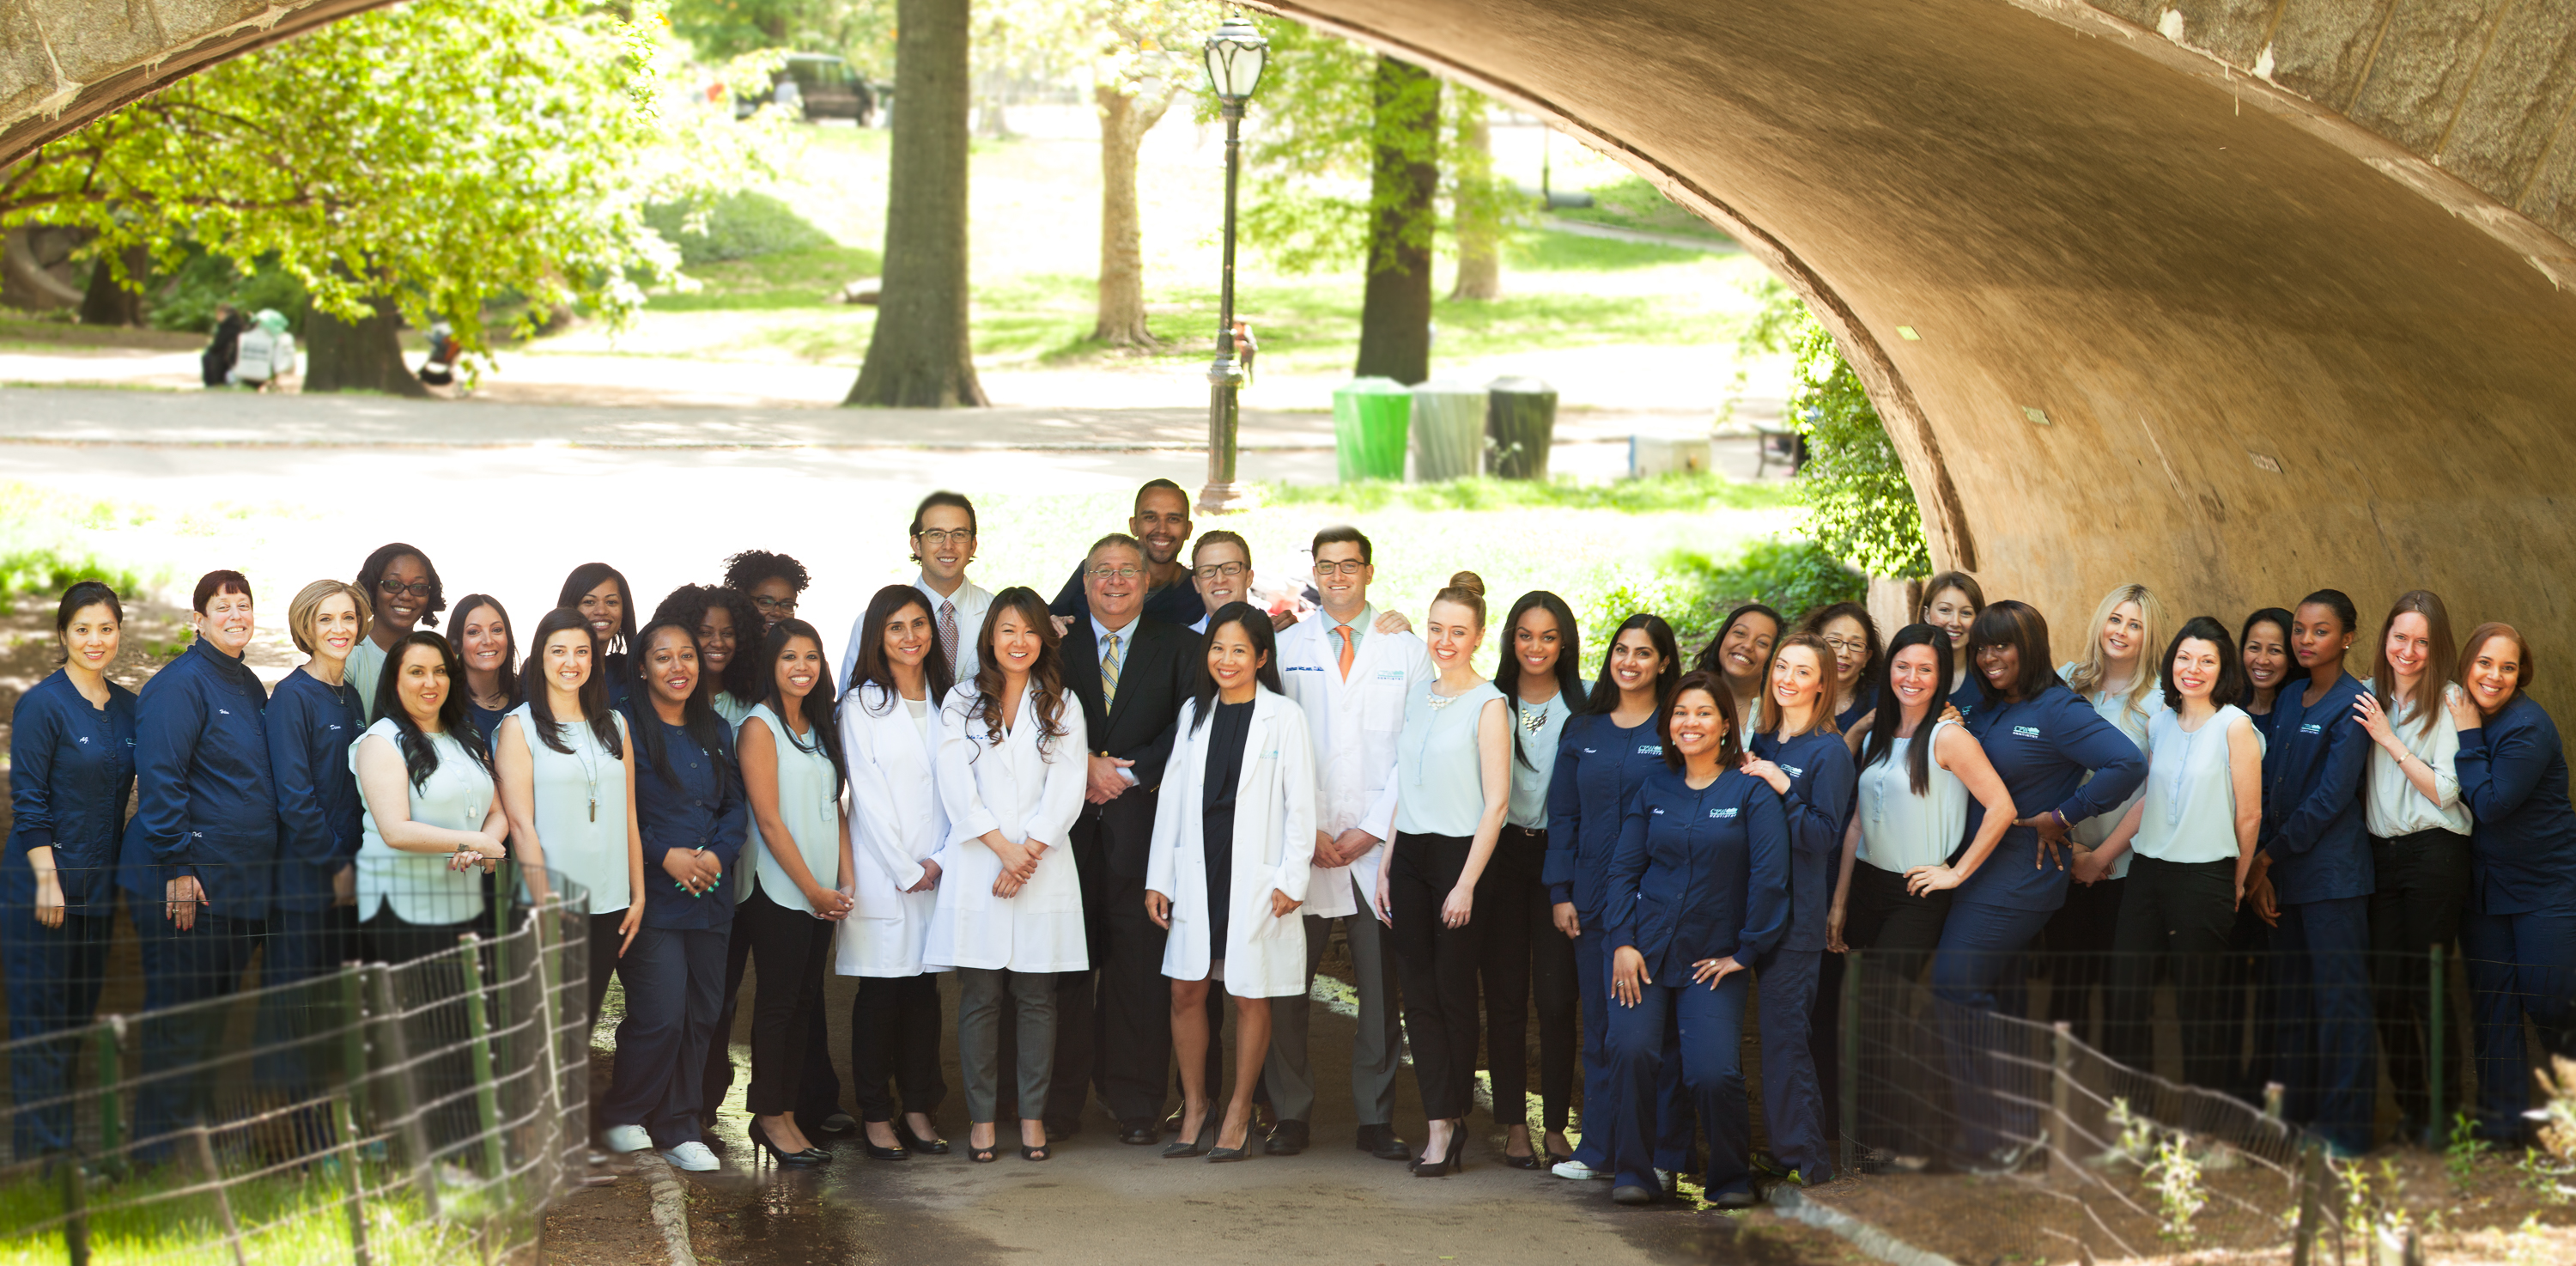 cpw team photos central park west dentistry